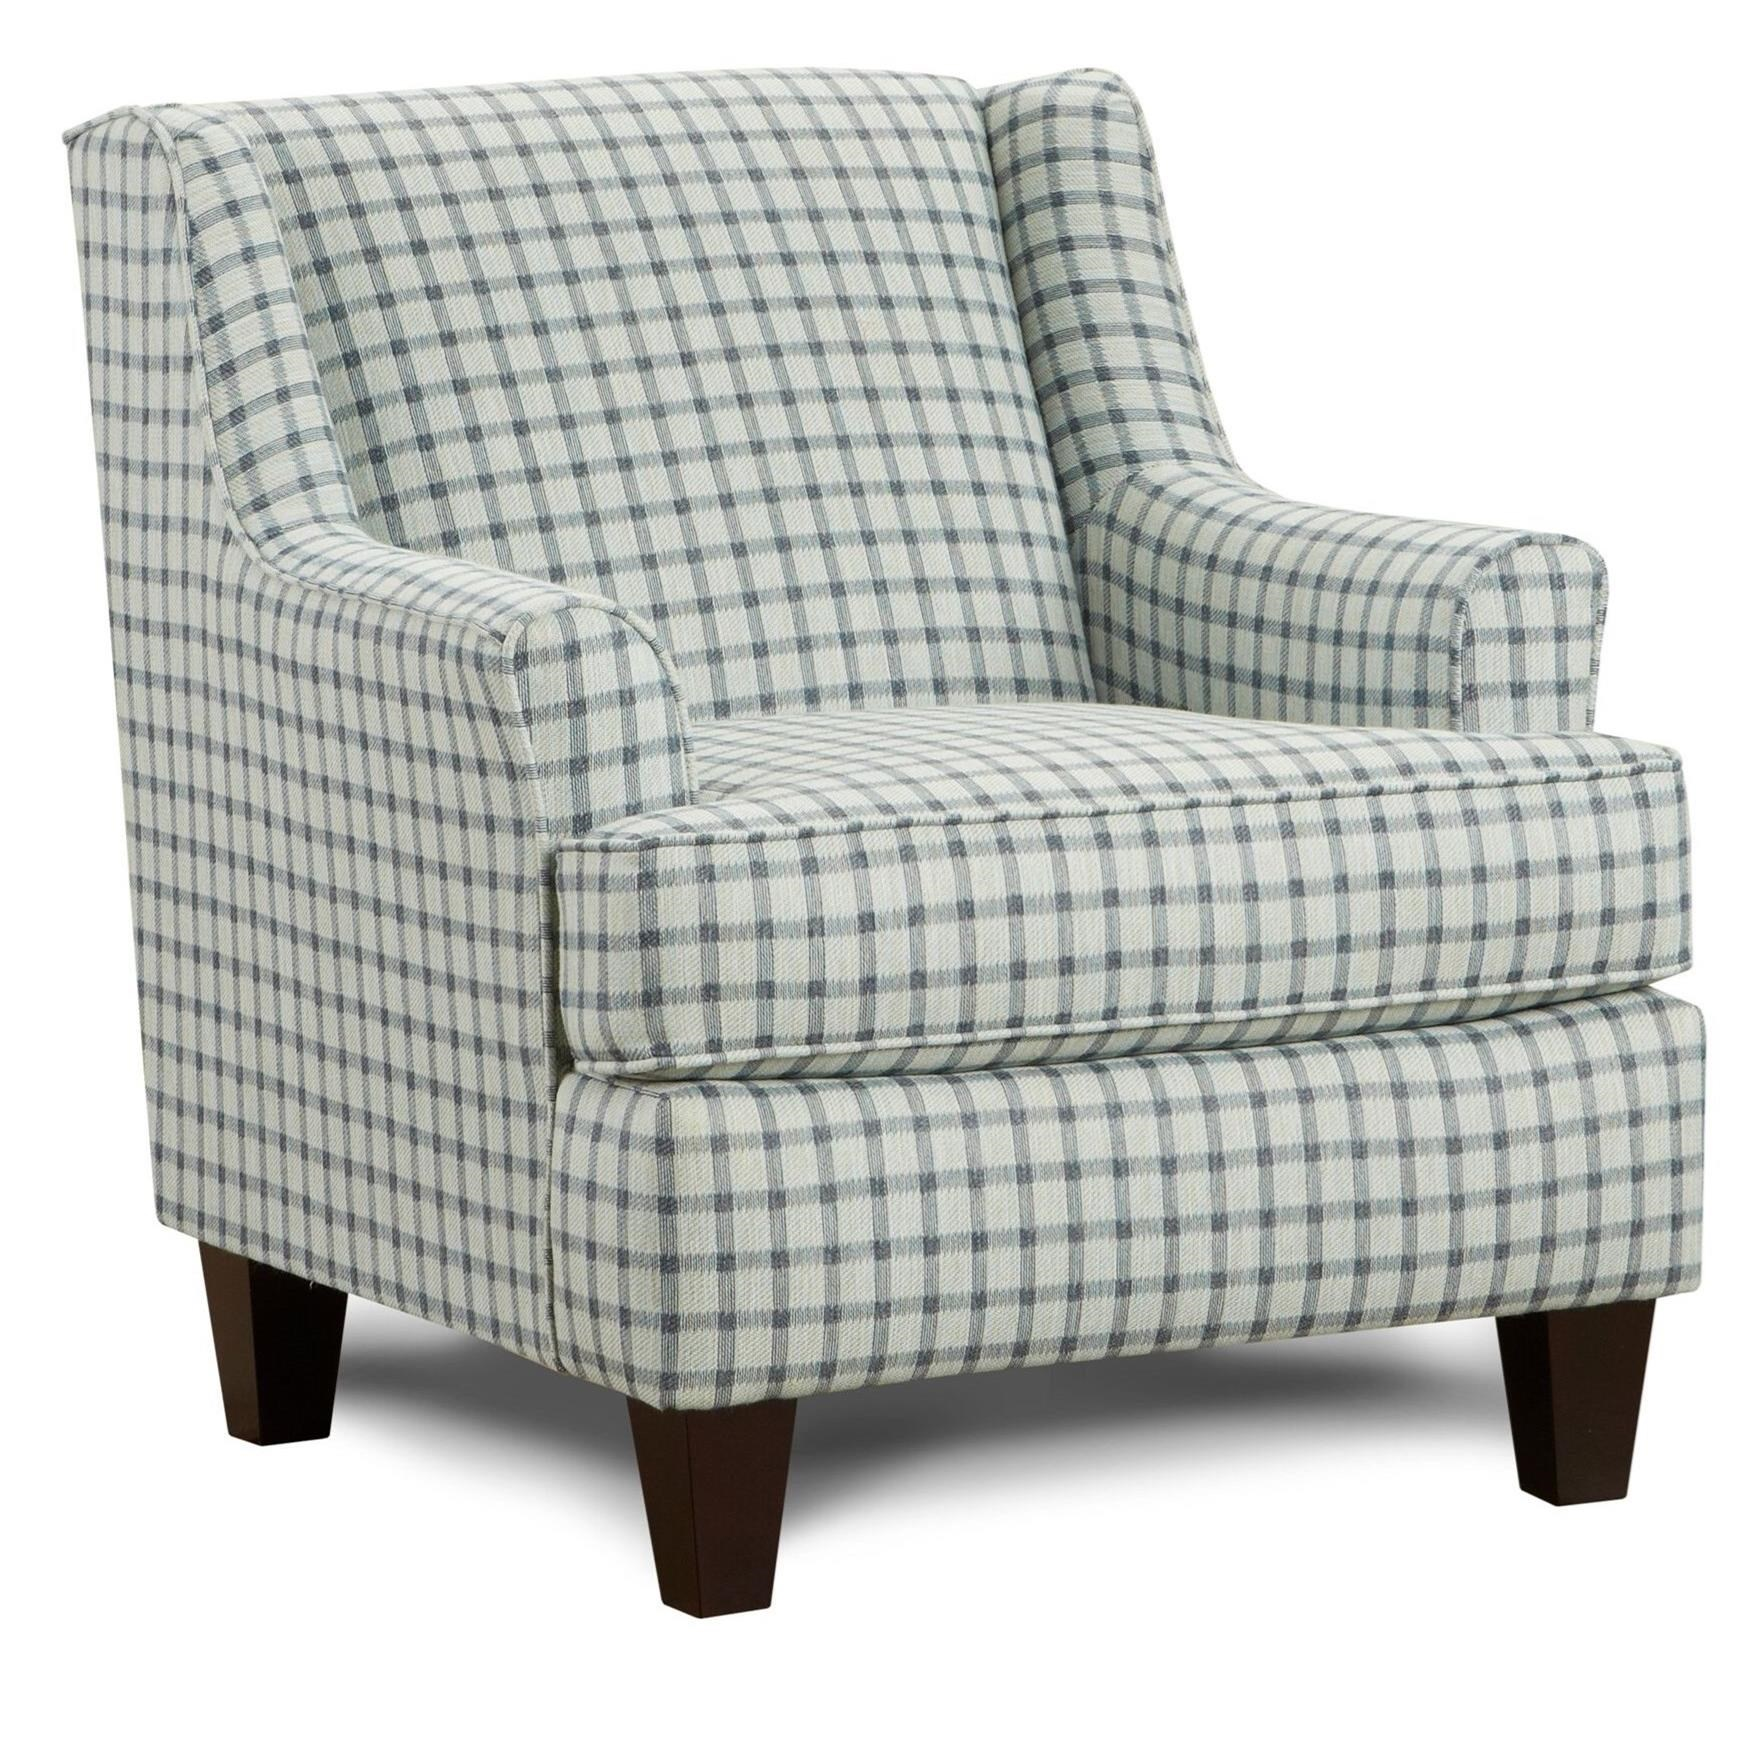 340 Upholstered Chair at Belfort Furniture